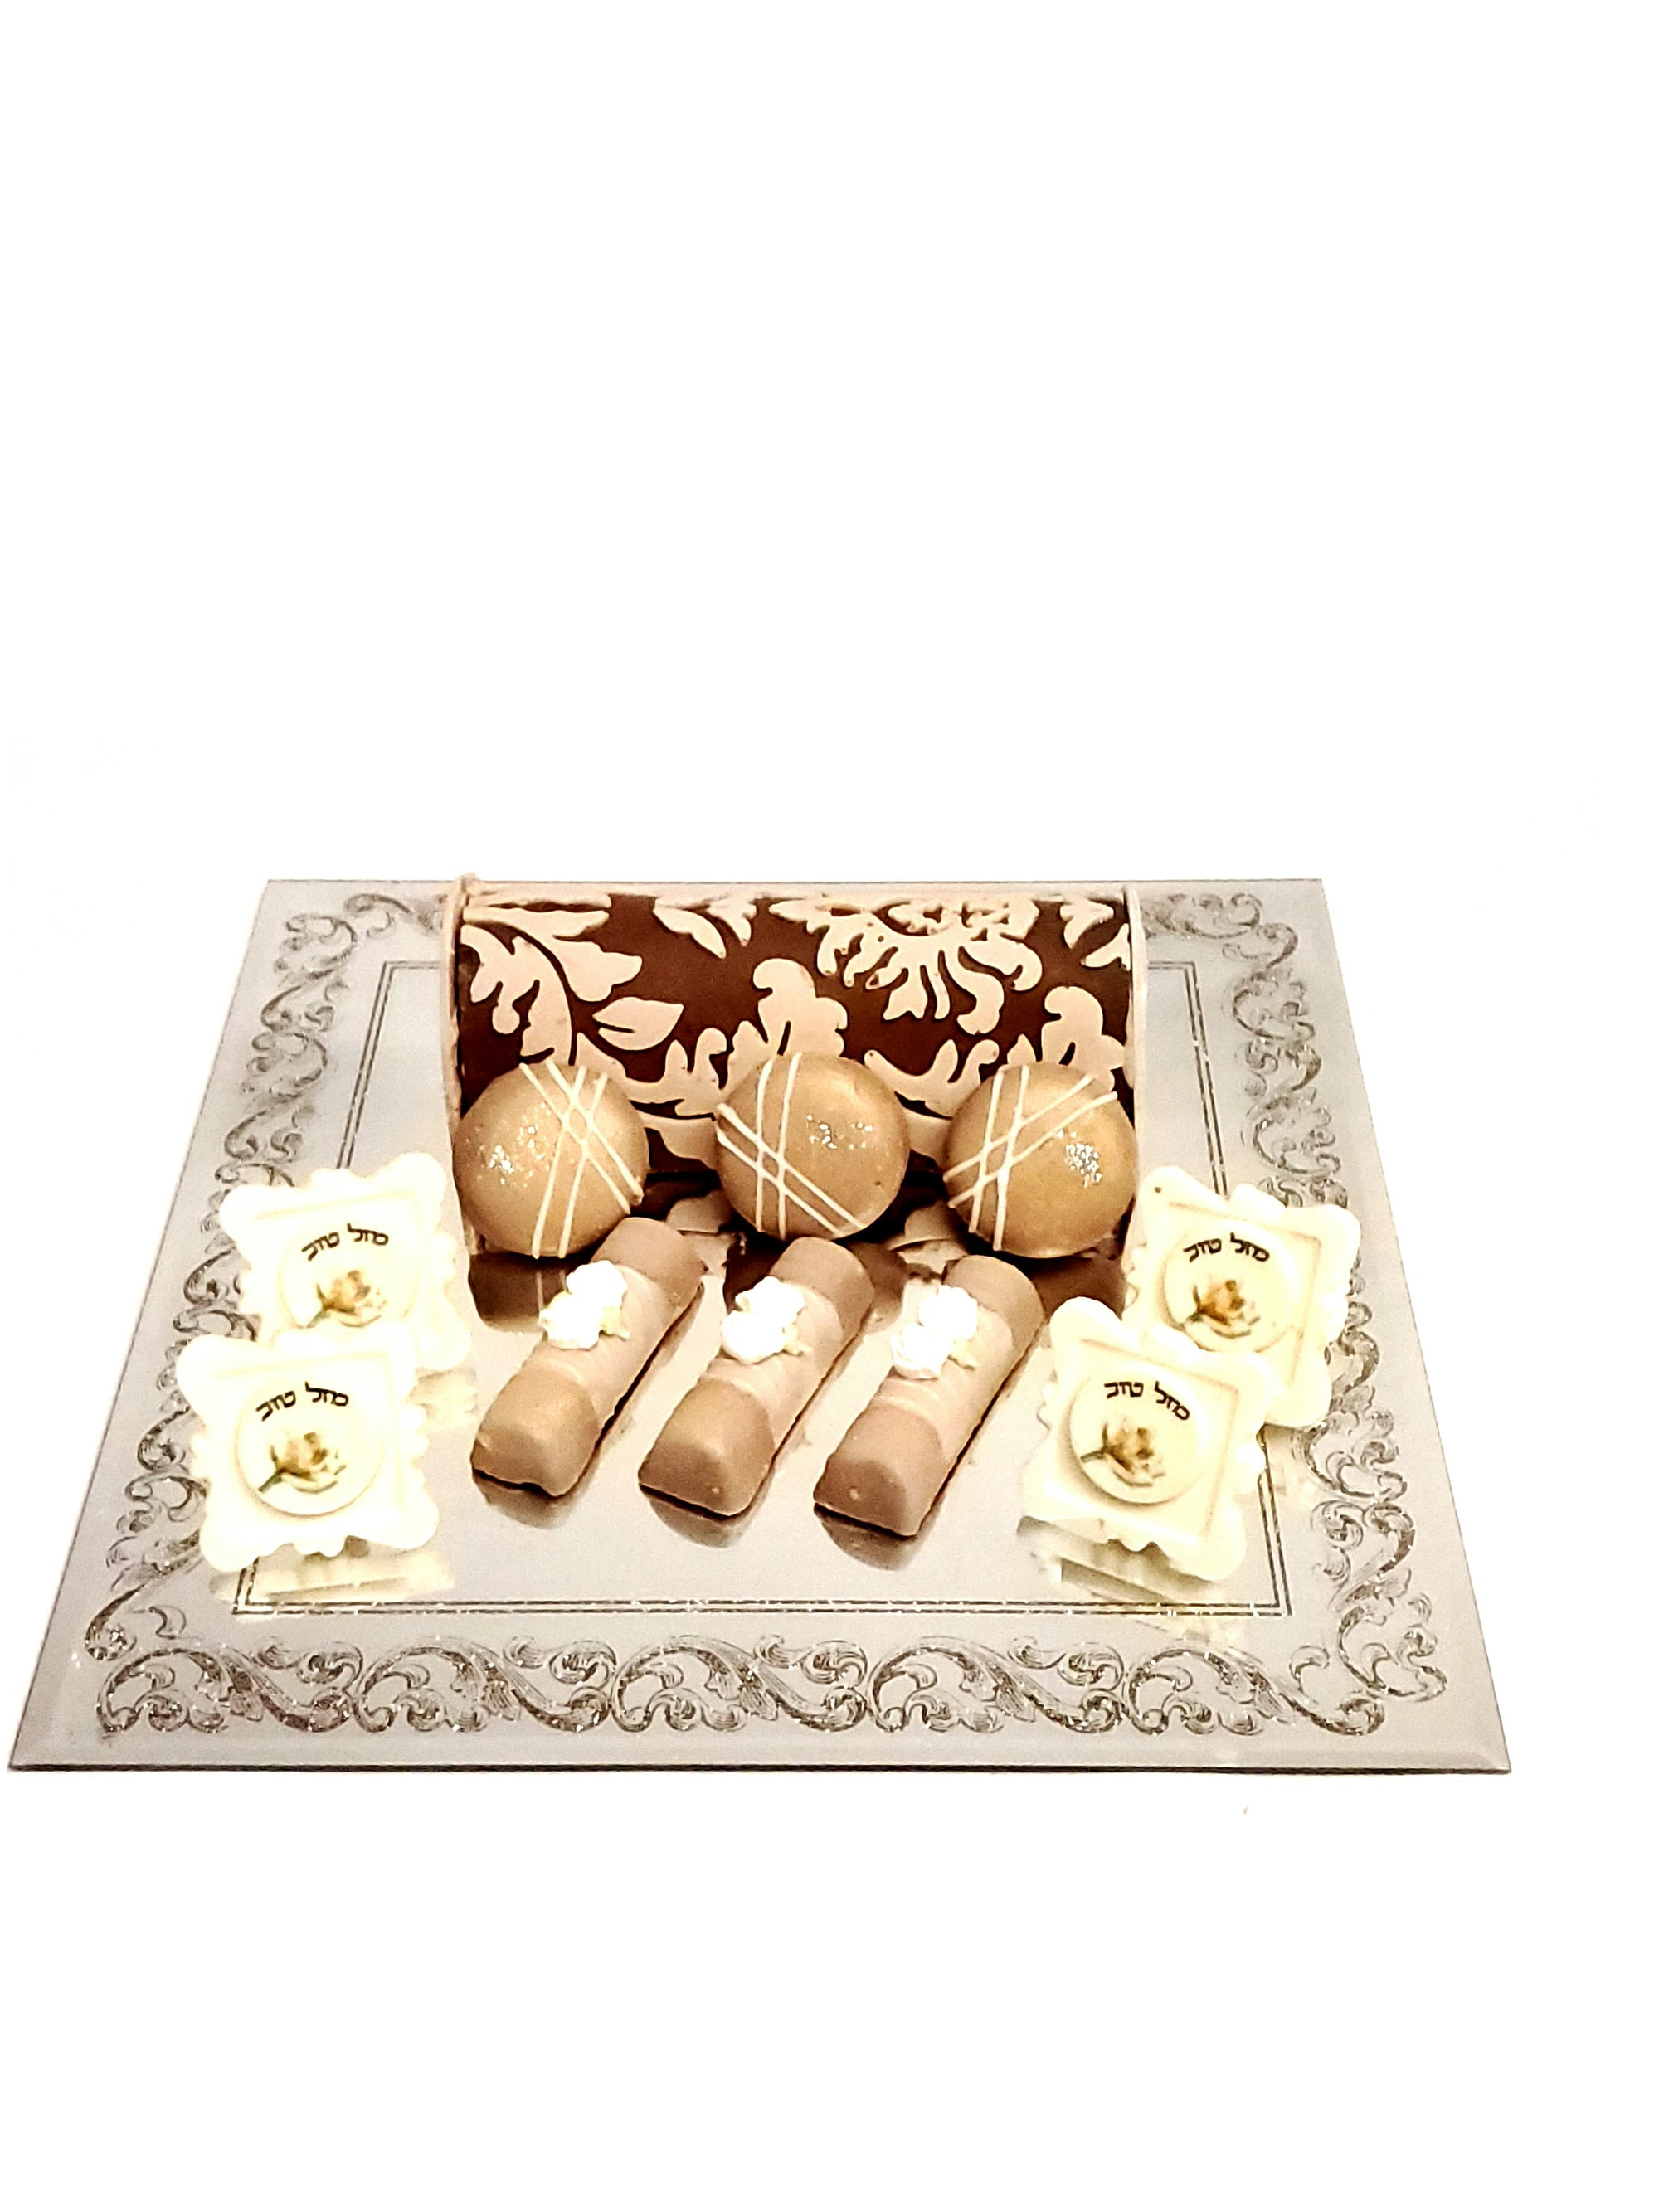 Elegant Simcha Mazel Tov Chocolate Arrangement